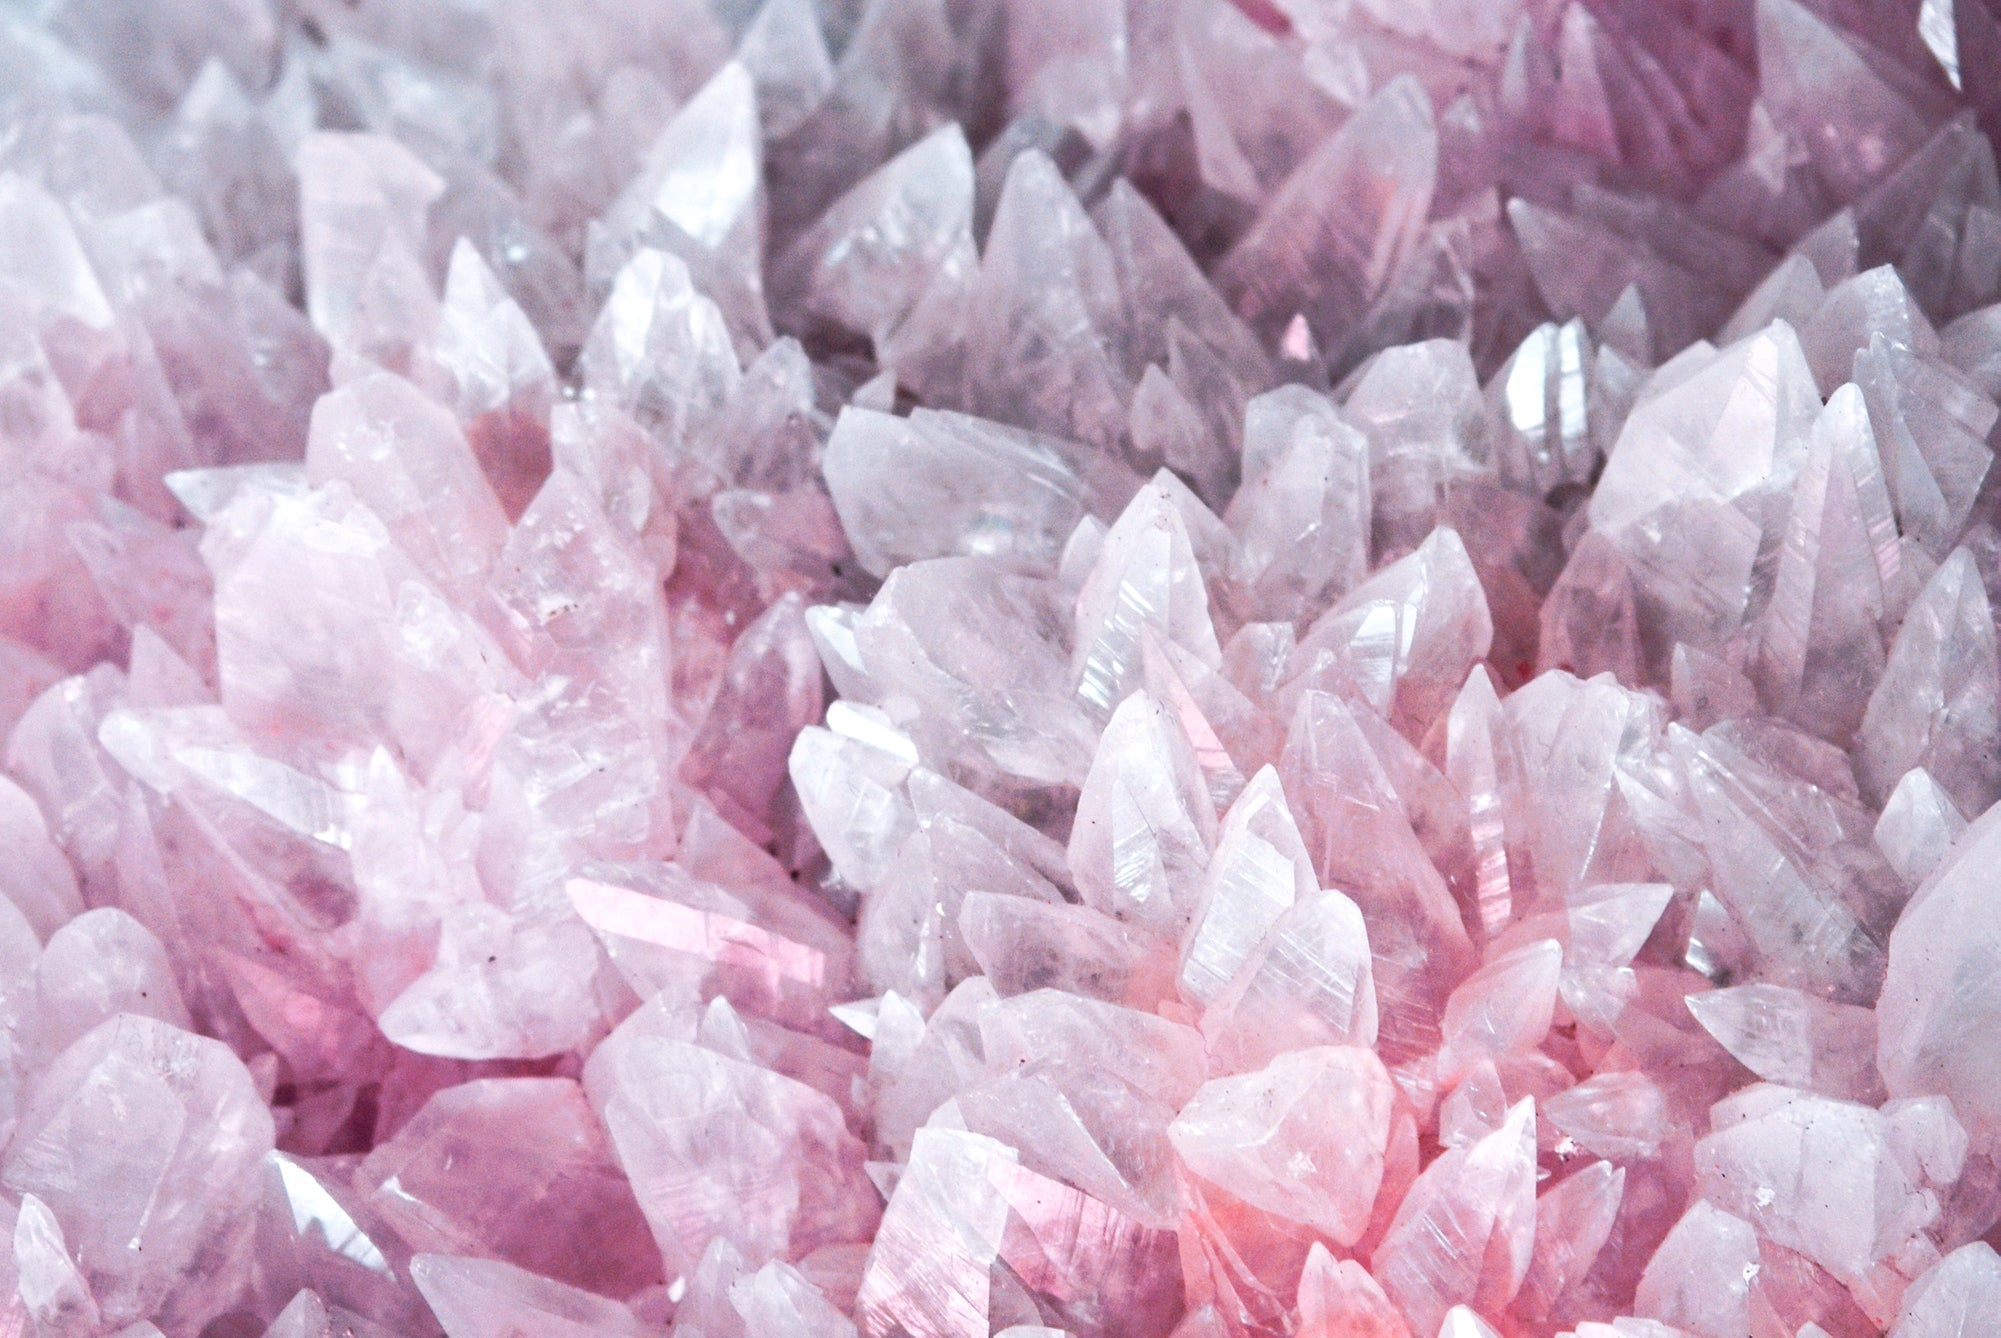 Close up of pale pink and grey crystal clusters muck like the inside of a geode